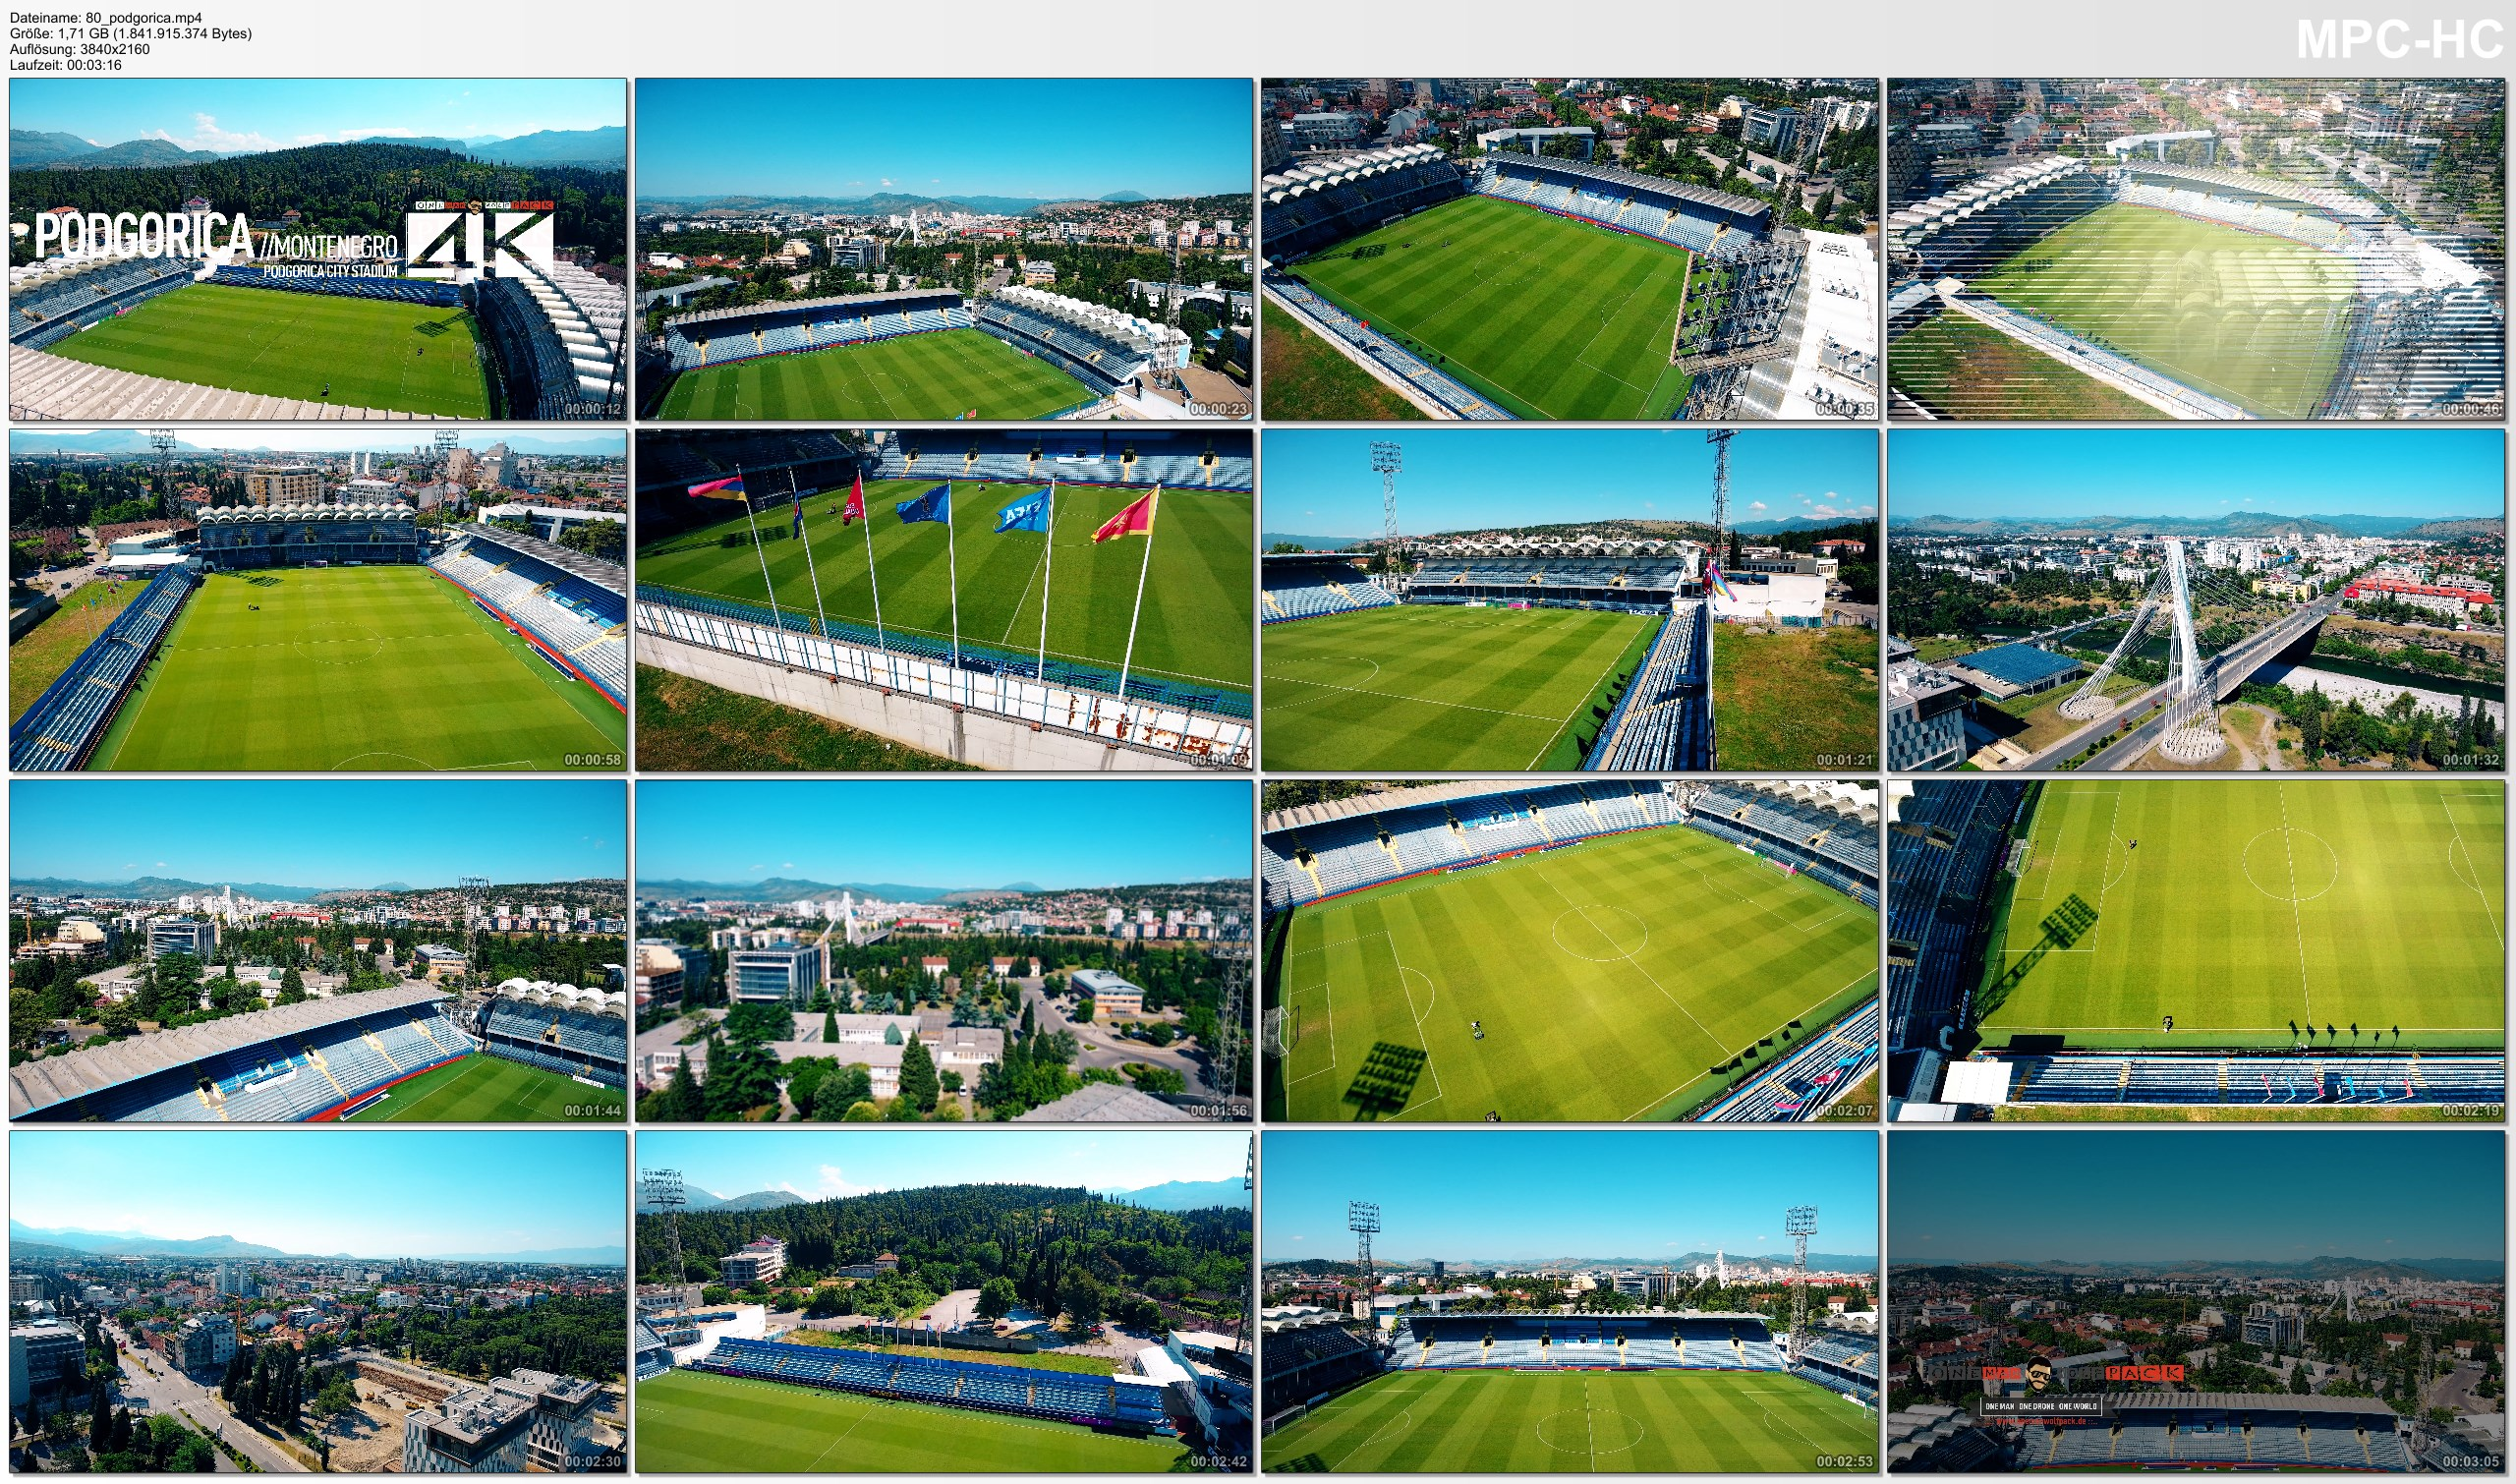 Drone Pictures from Video 【4K】Drone Footage | PODGORICA CITY STADIUM Montenegro ..:: Spectacular Arenas 2019